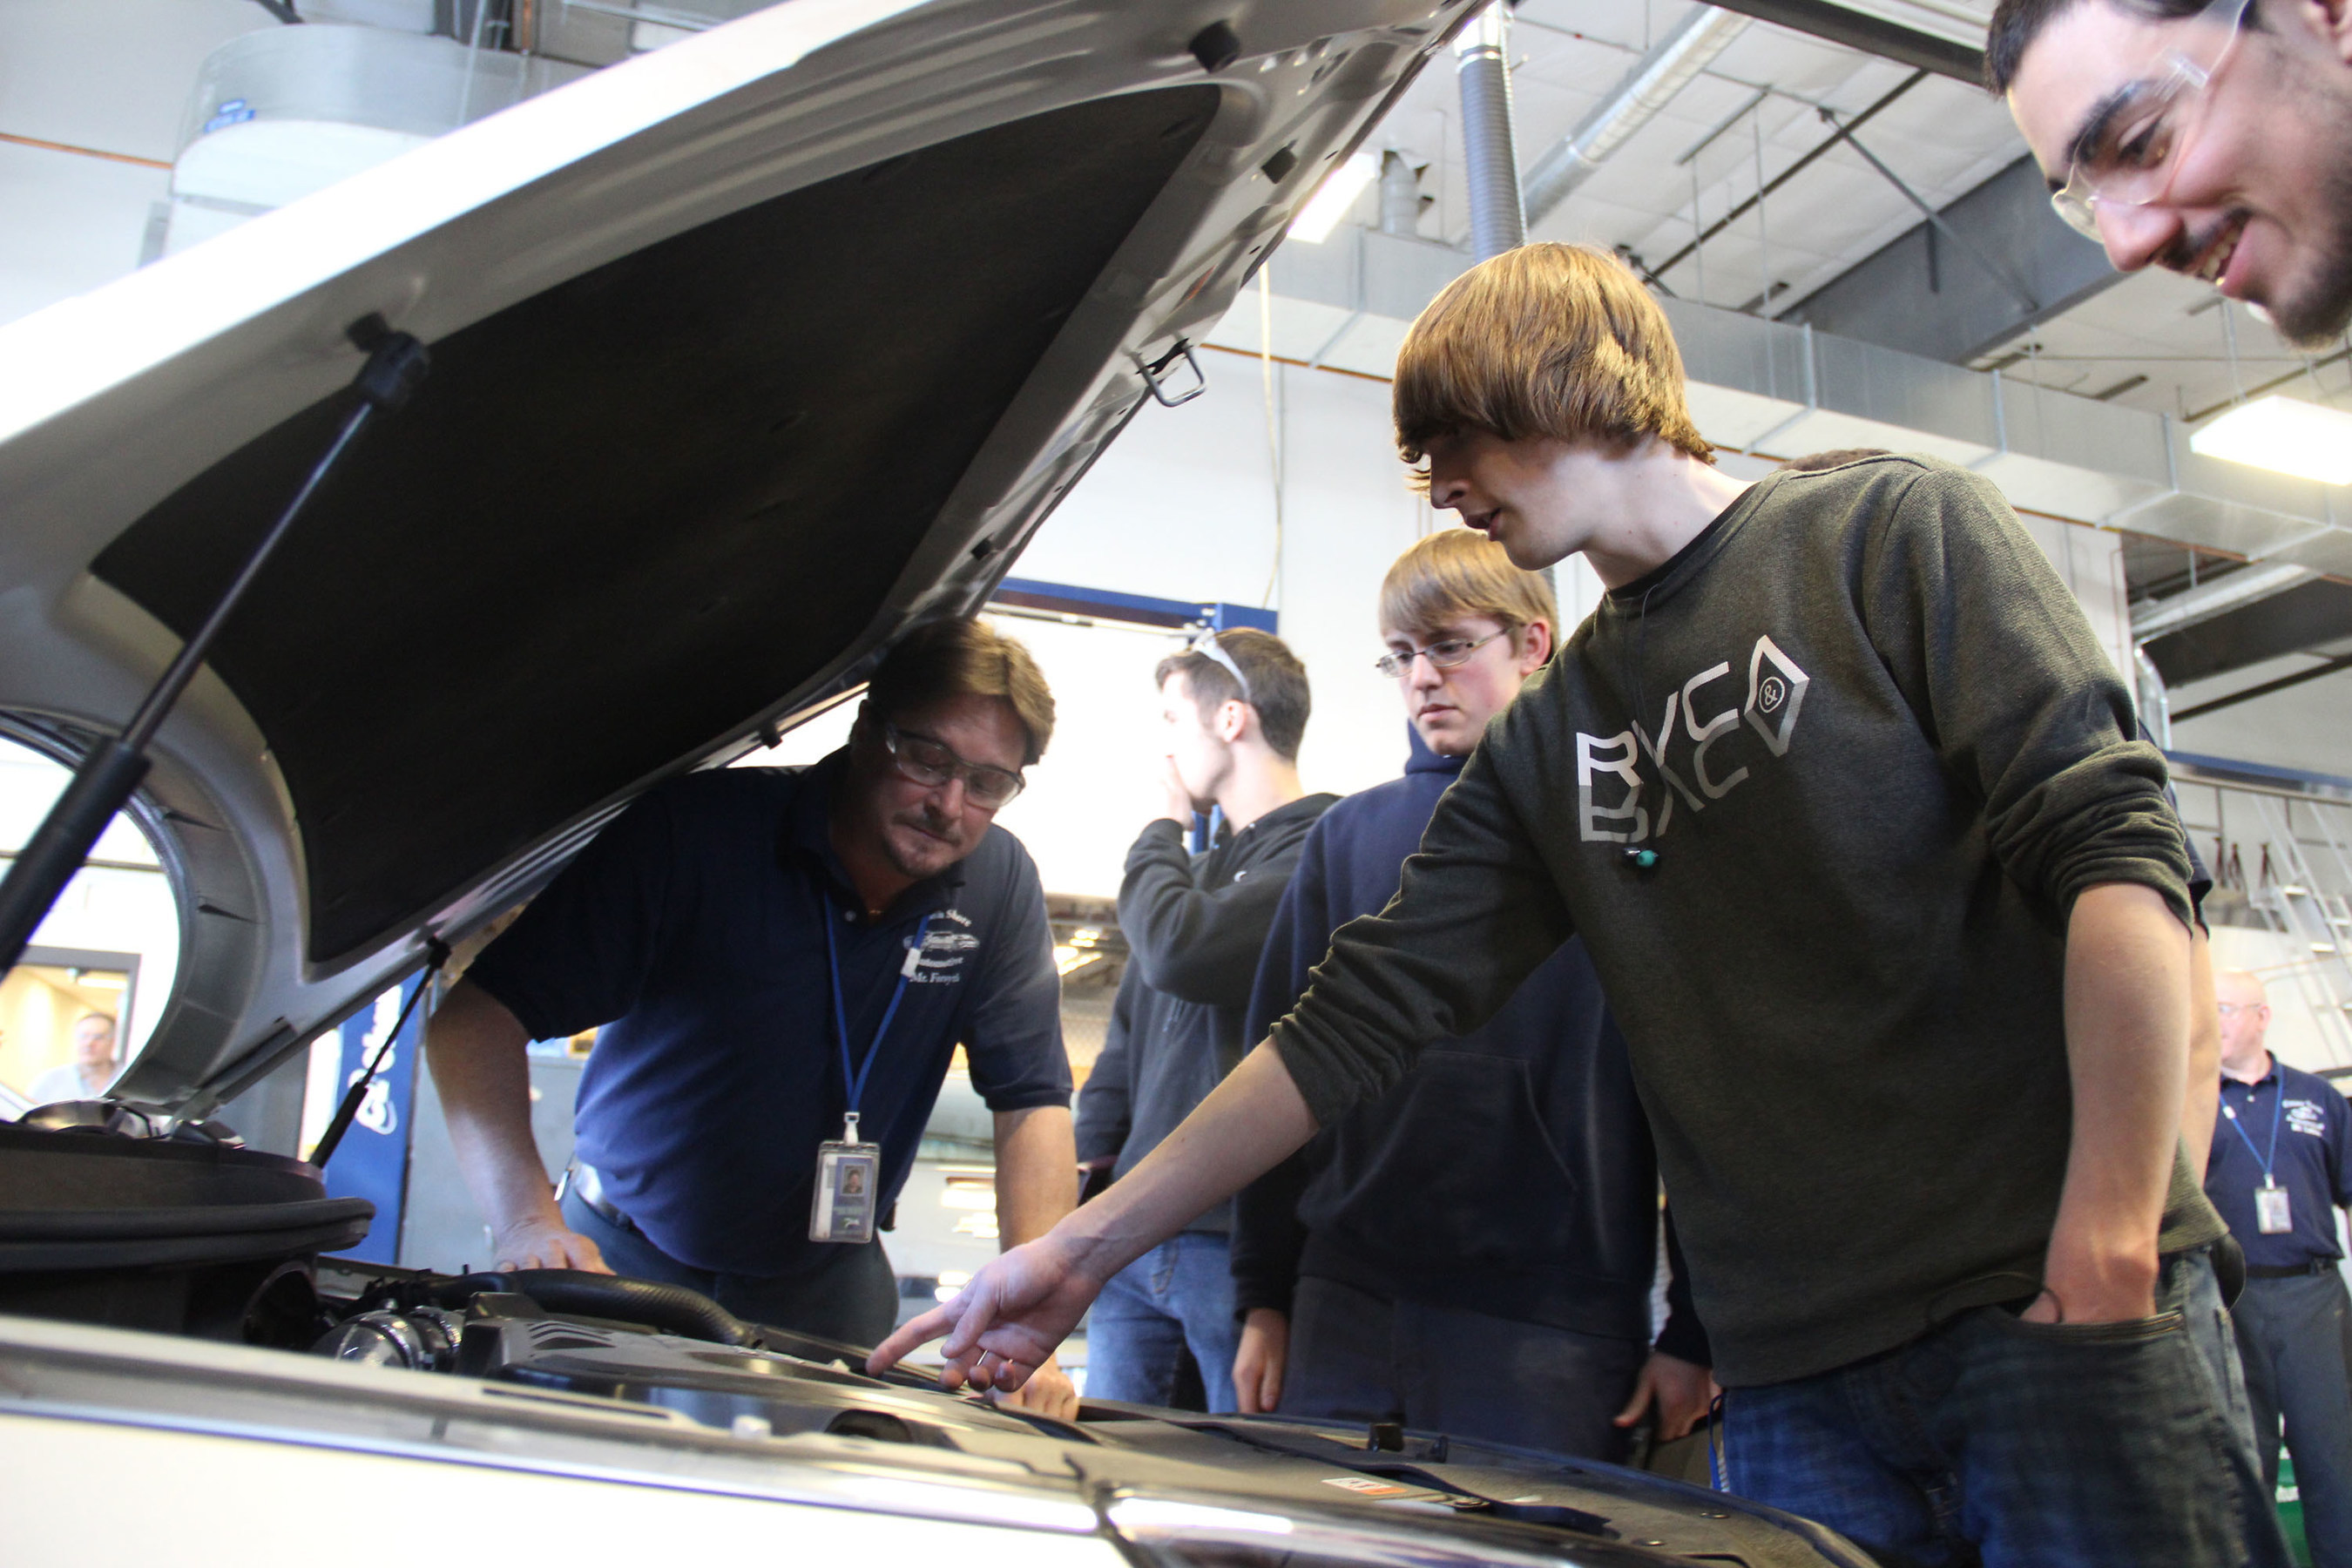 Essex Tech. students interact with their new 2015 Hyundai Sonata. Essex Technical High School received a new addition to its Technology and Services Academy from Hyundai Motor America. The company donated a 2015 Sonata that will be used to train new technicians, which is extremely critical for the automotive industry. The students and faculty received the keys today. L to R in picture (Tom Forsyth (Instructor), Jason Hampton, Dante Sargent, Daniel Civinar)